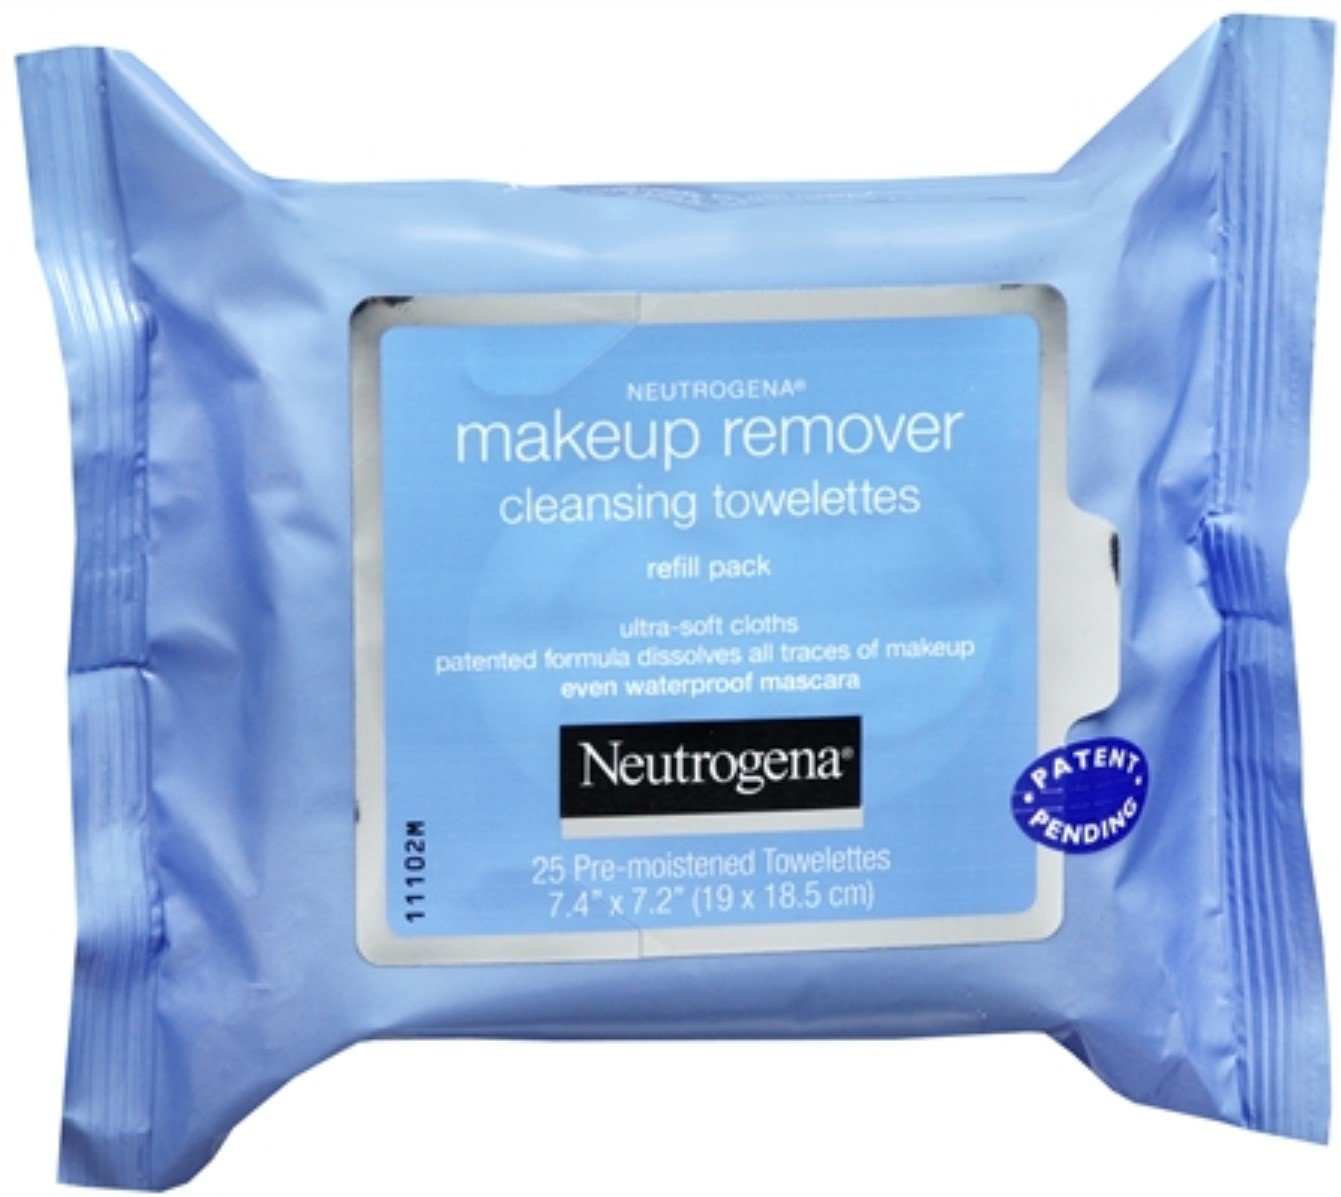 Neutrogena Make-Up Remover Cleansing Towelettes Refills 25 Each (Pack of 10)